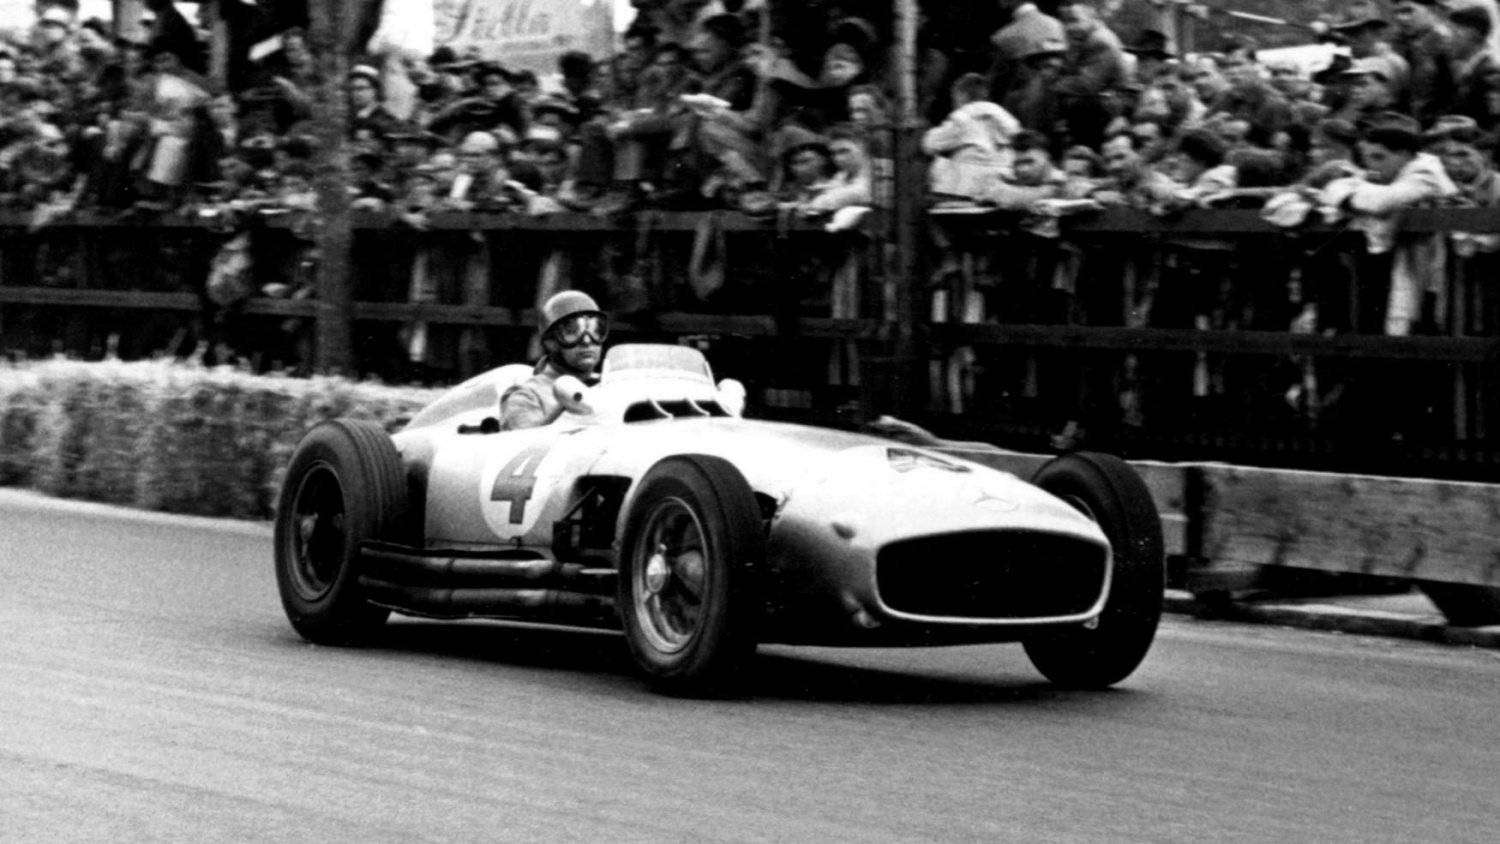 A Life of Speed: The Juan Manuel Fangio Story